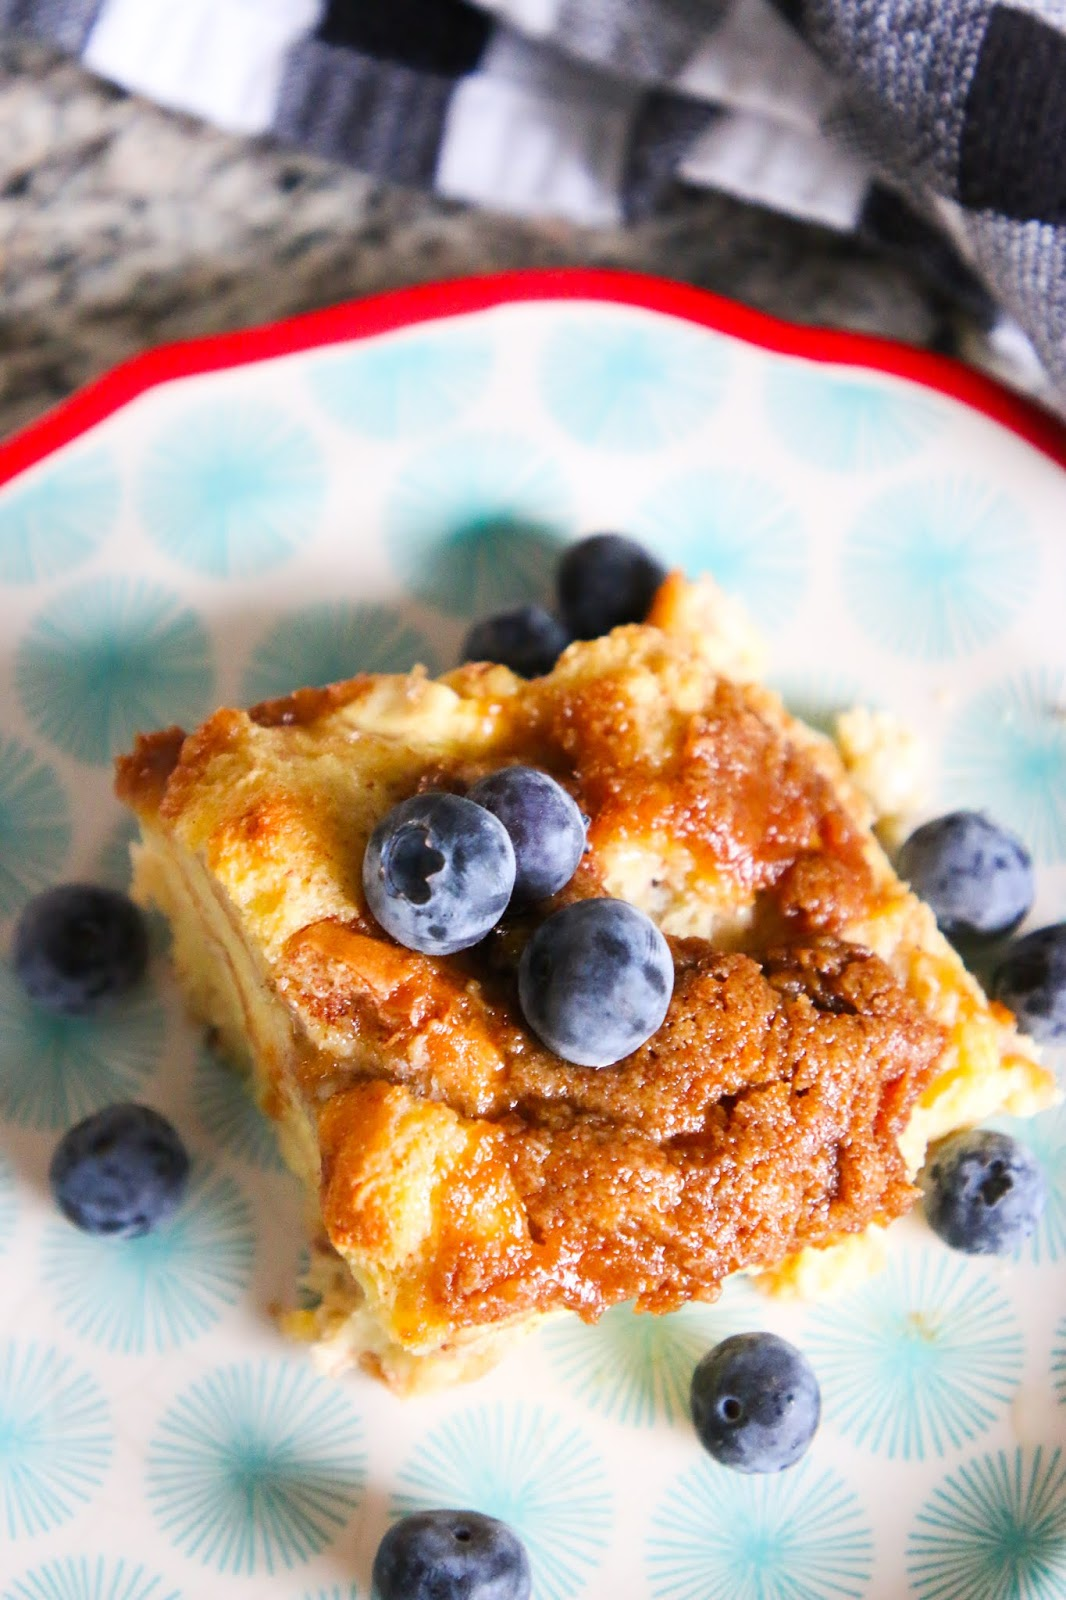 healthy French toast casserole. French toast casserole for a crowd, baked French toast casserole. Brioche French toast casserole. French toast bake with Texas toast. Barefoot contessa baked French toast casserole. French toast casserole with cream cheese. Baked crispy French toast.